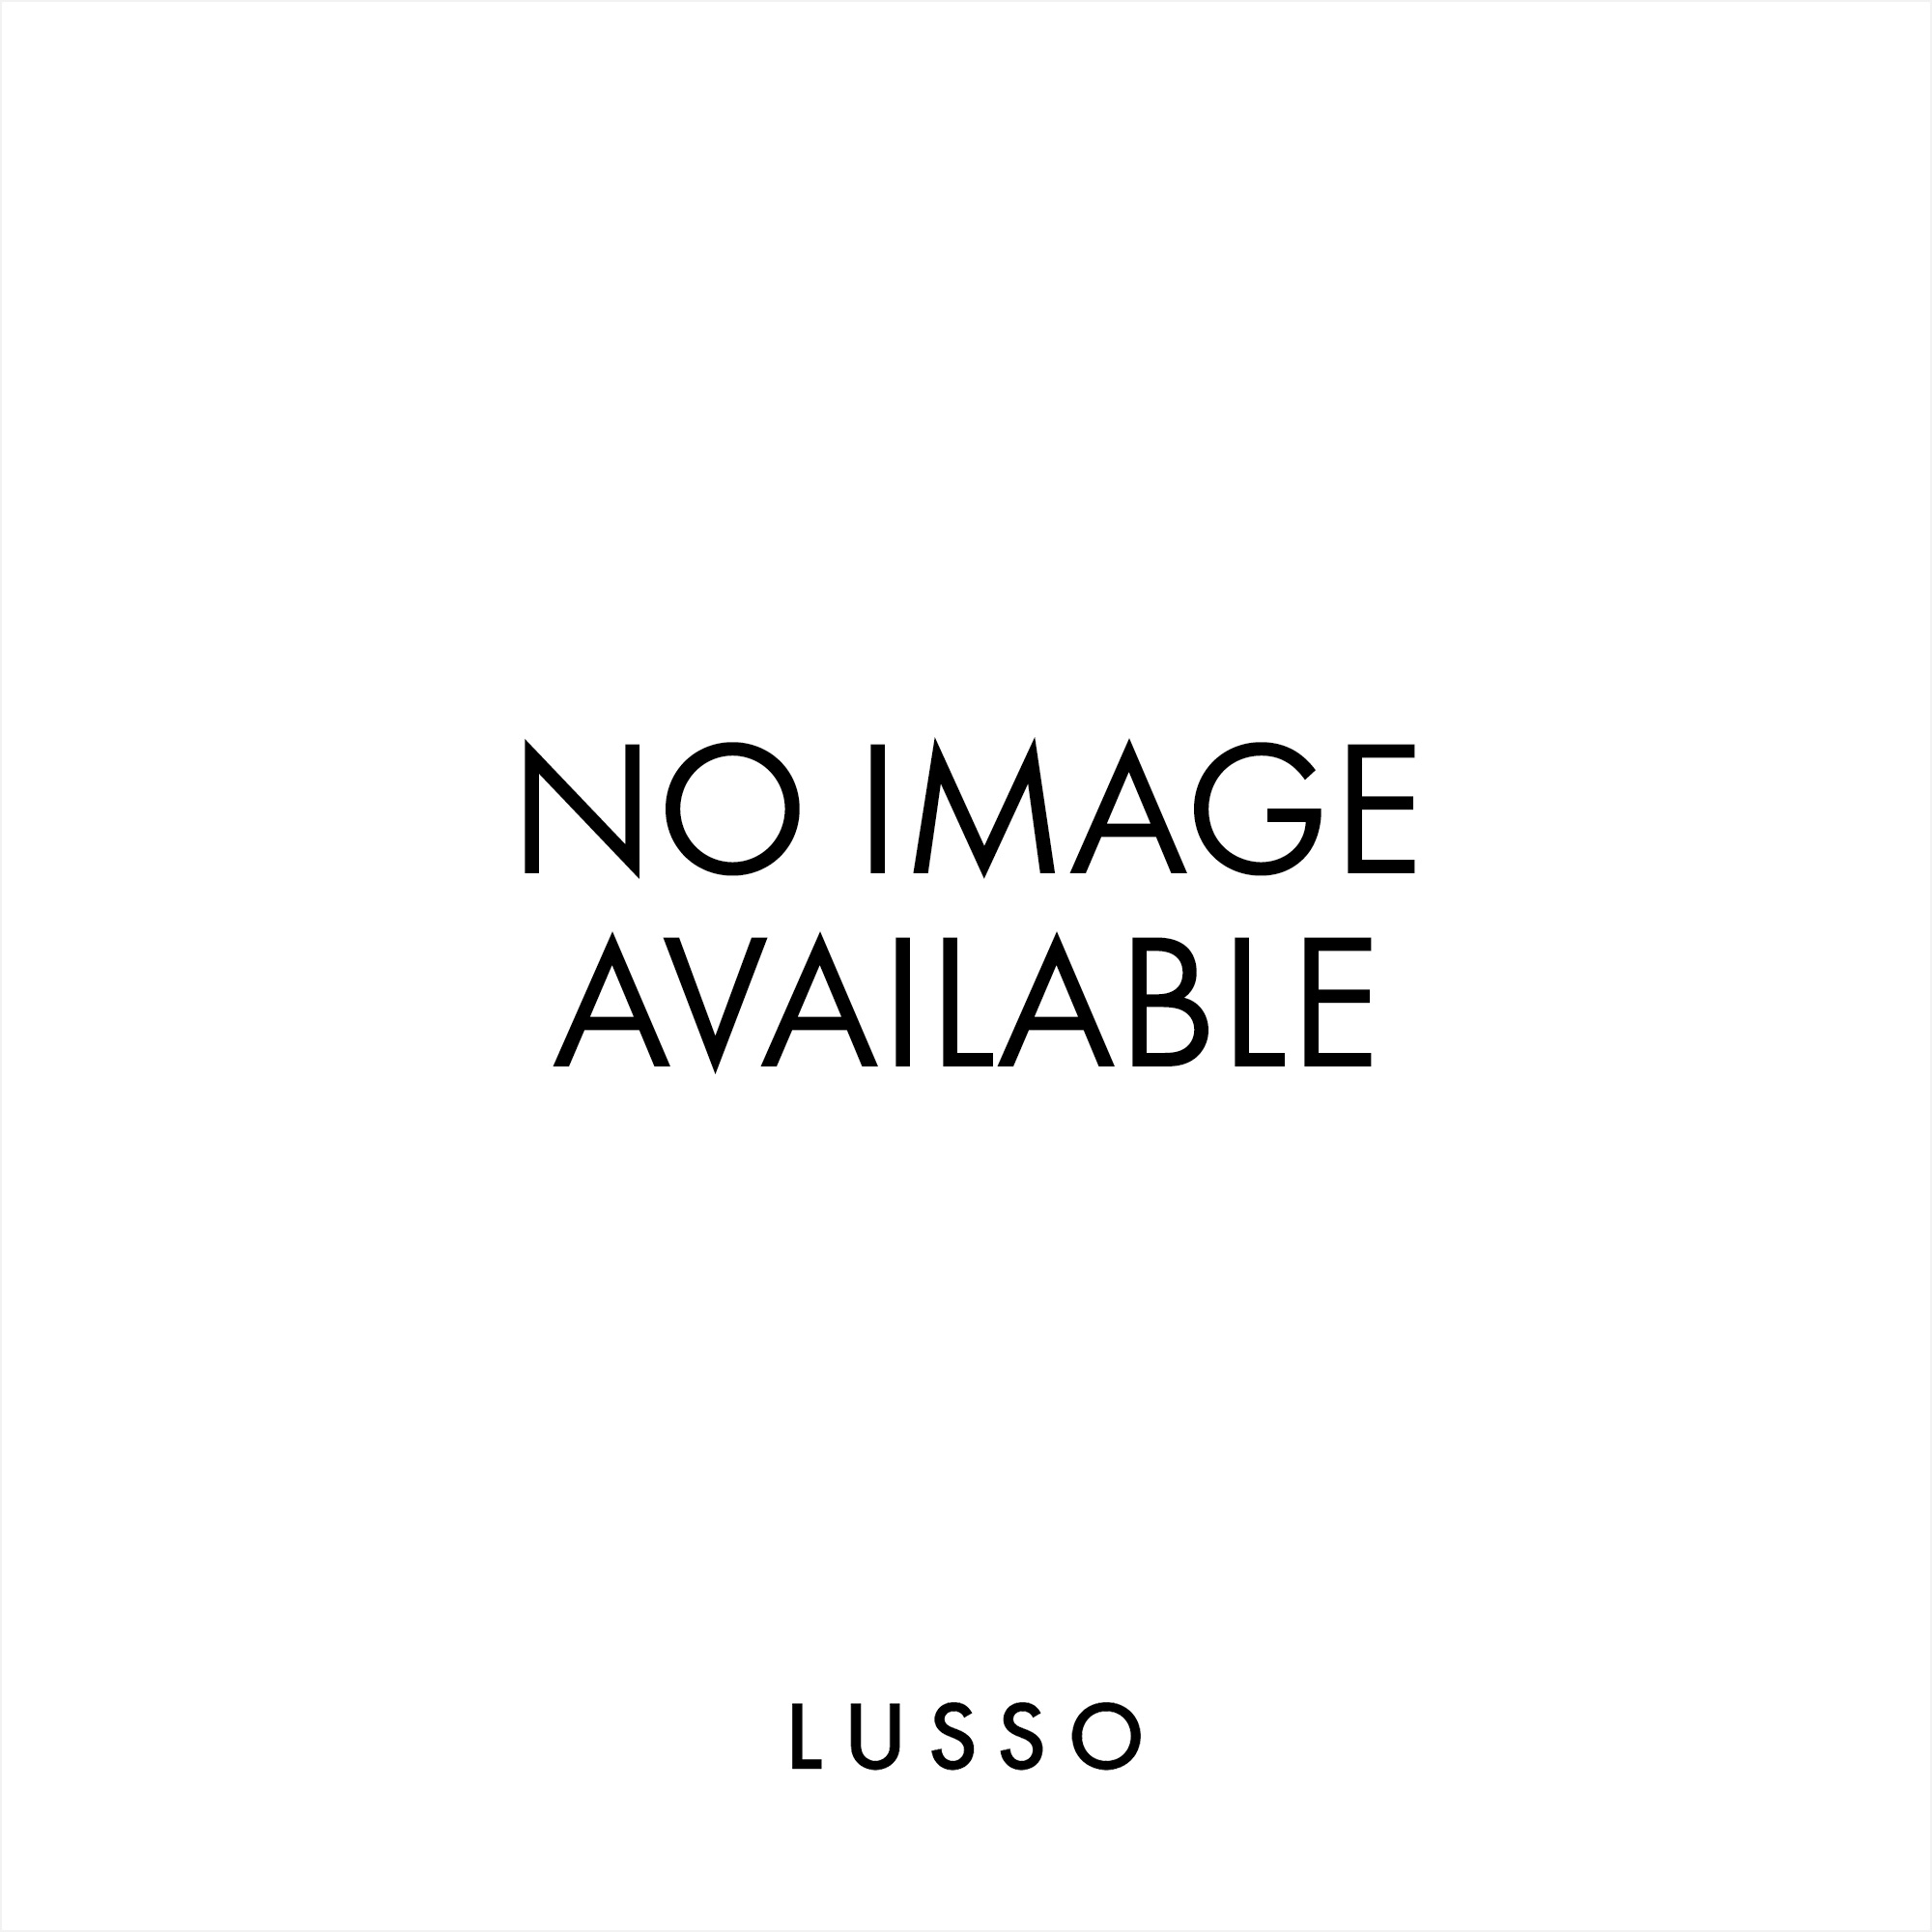 LUSSO STONE MODERN COMPLETE WALK IN SHOWER ENCLOSURE - KIT C (ALL SIZES)